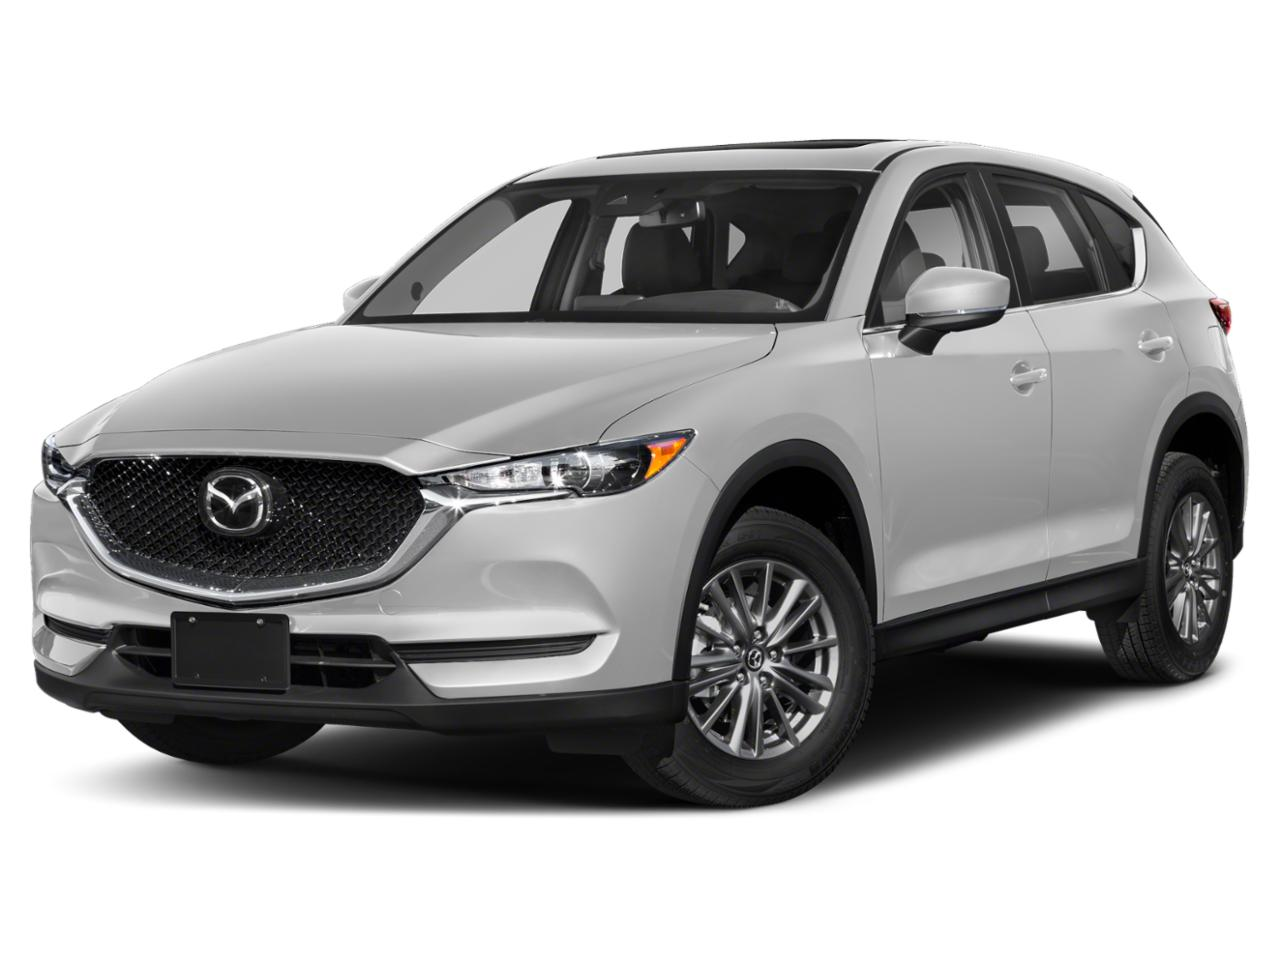 2019 Mazda CX-5 Vehicle Photo in Lincoln, NE 68521